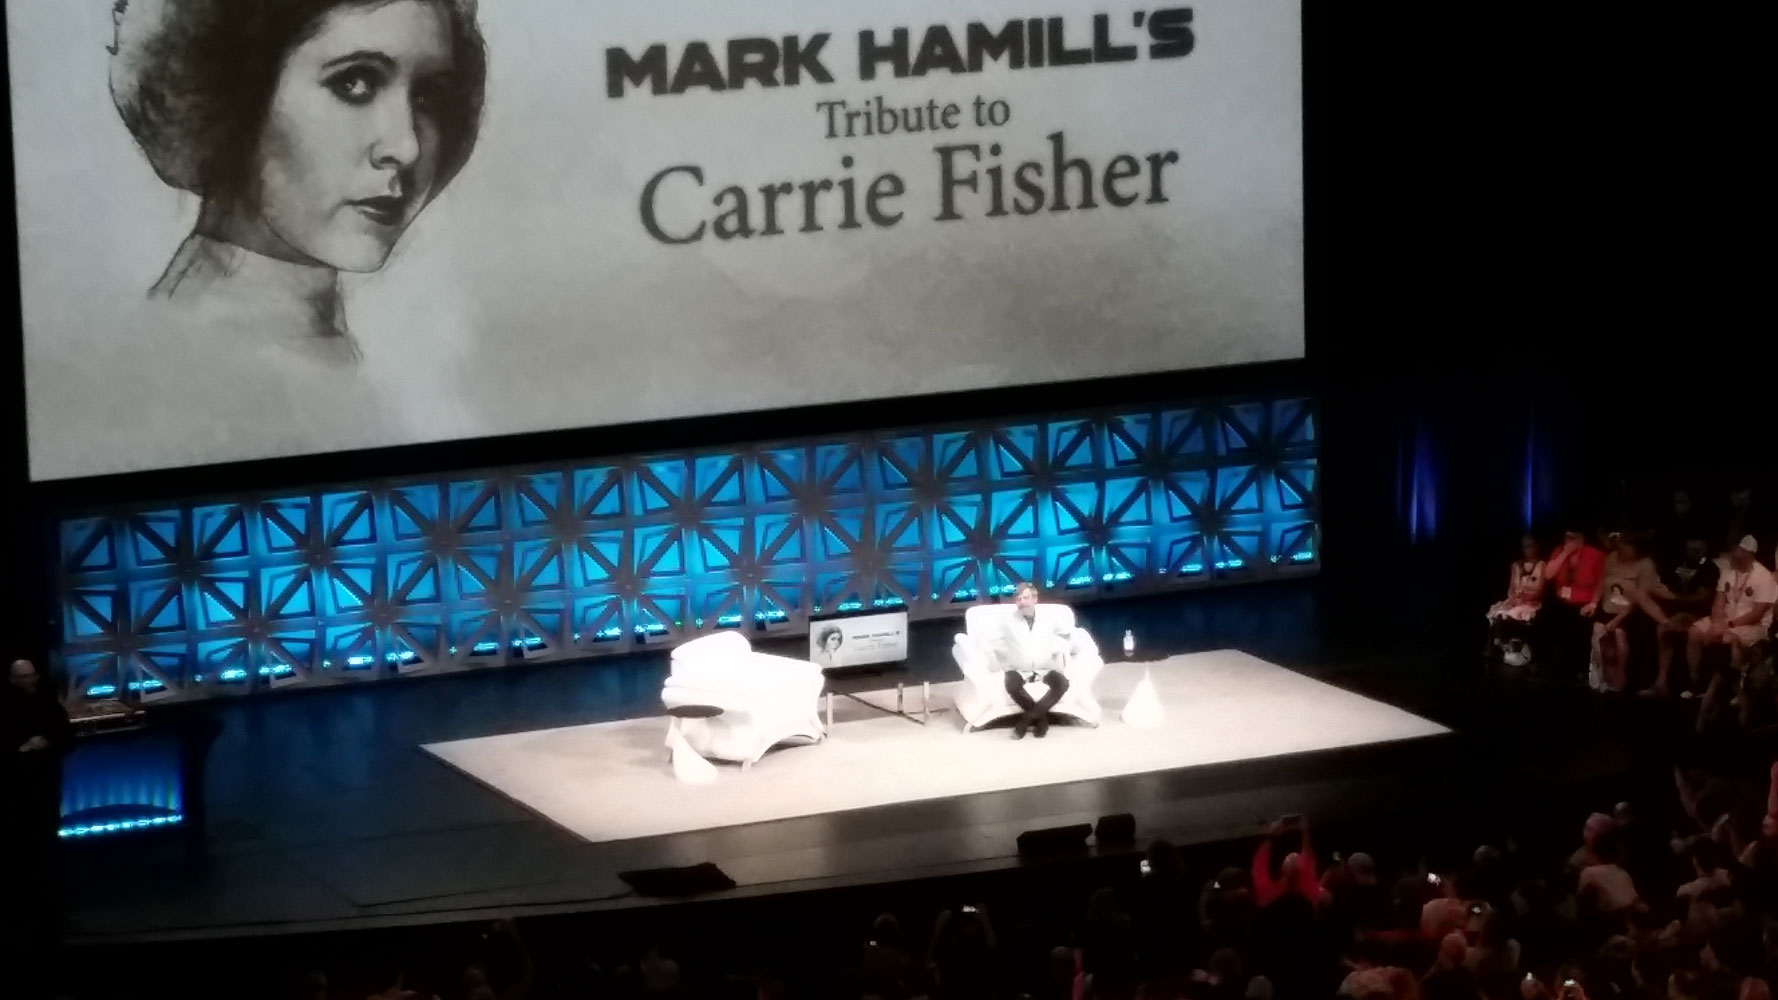 Got to see Mark Hamill's tribute to Carrie live :D